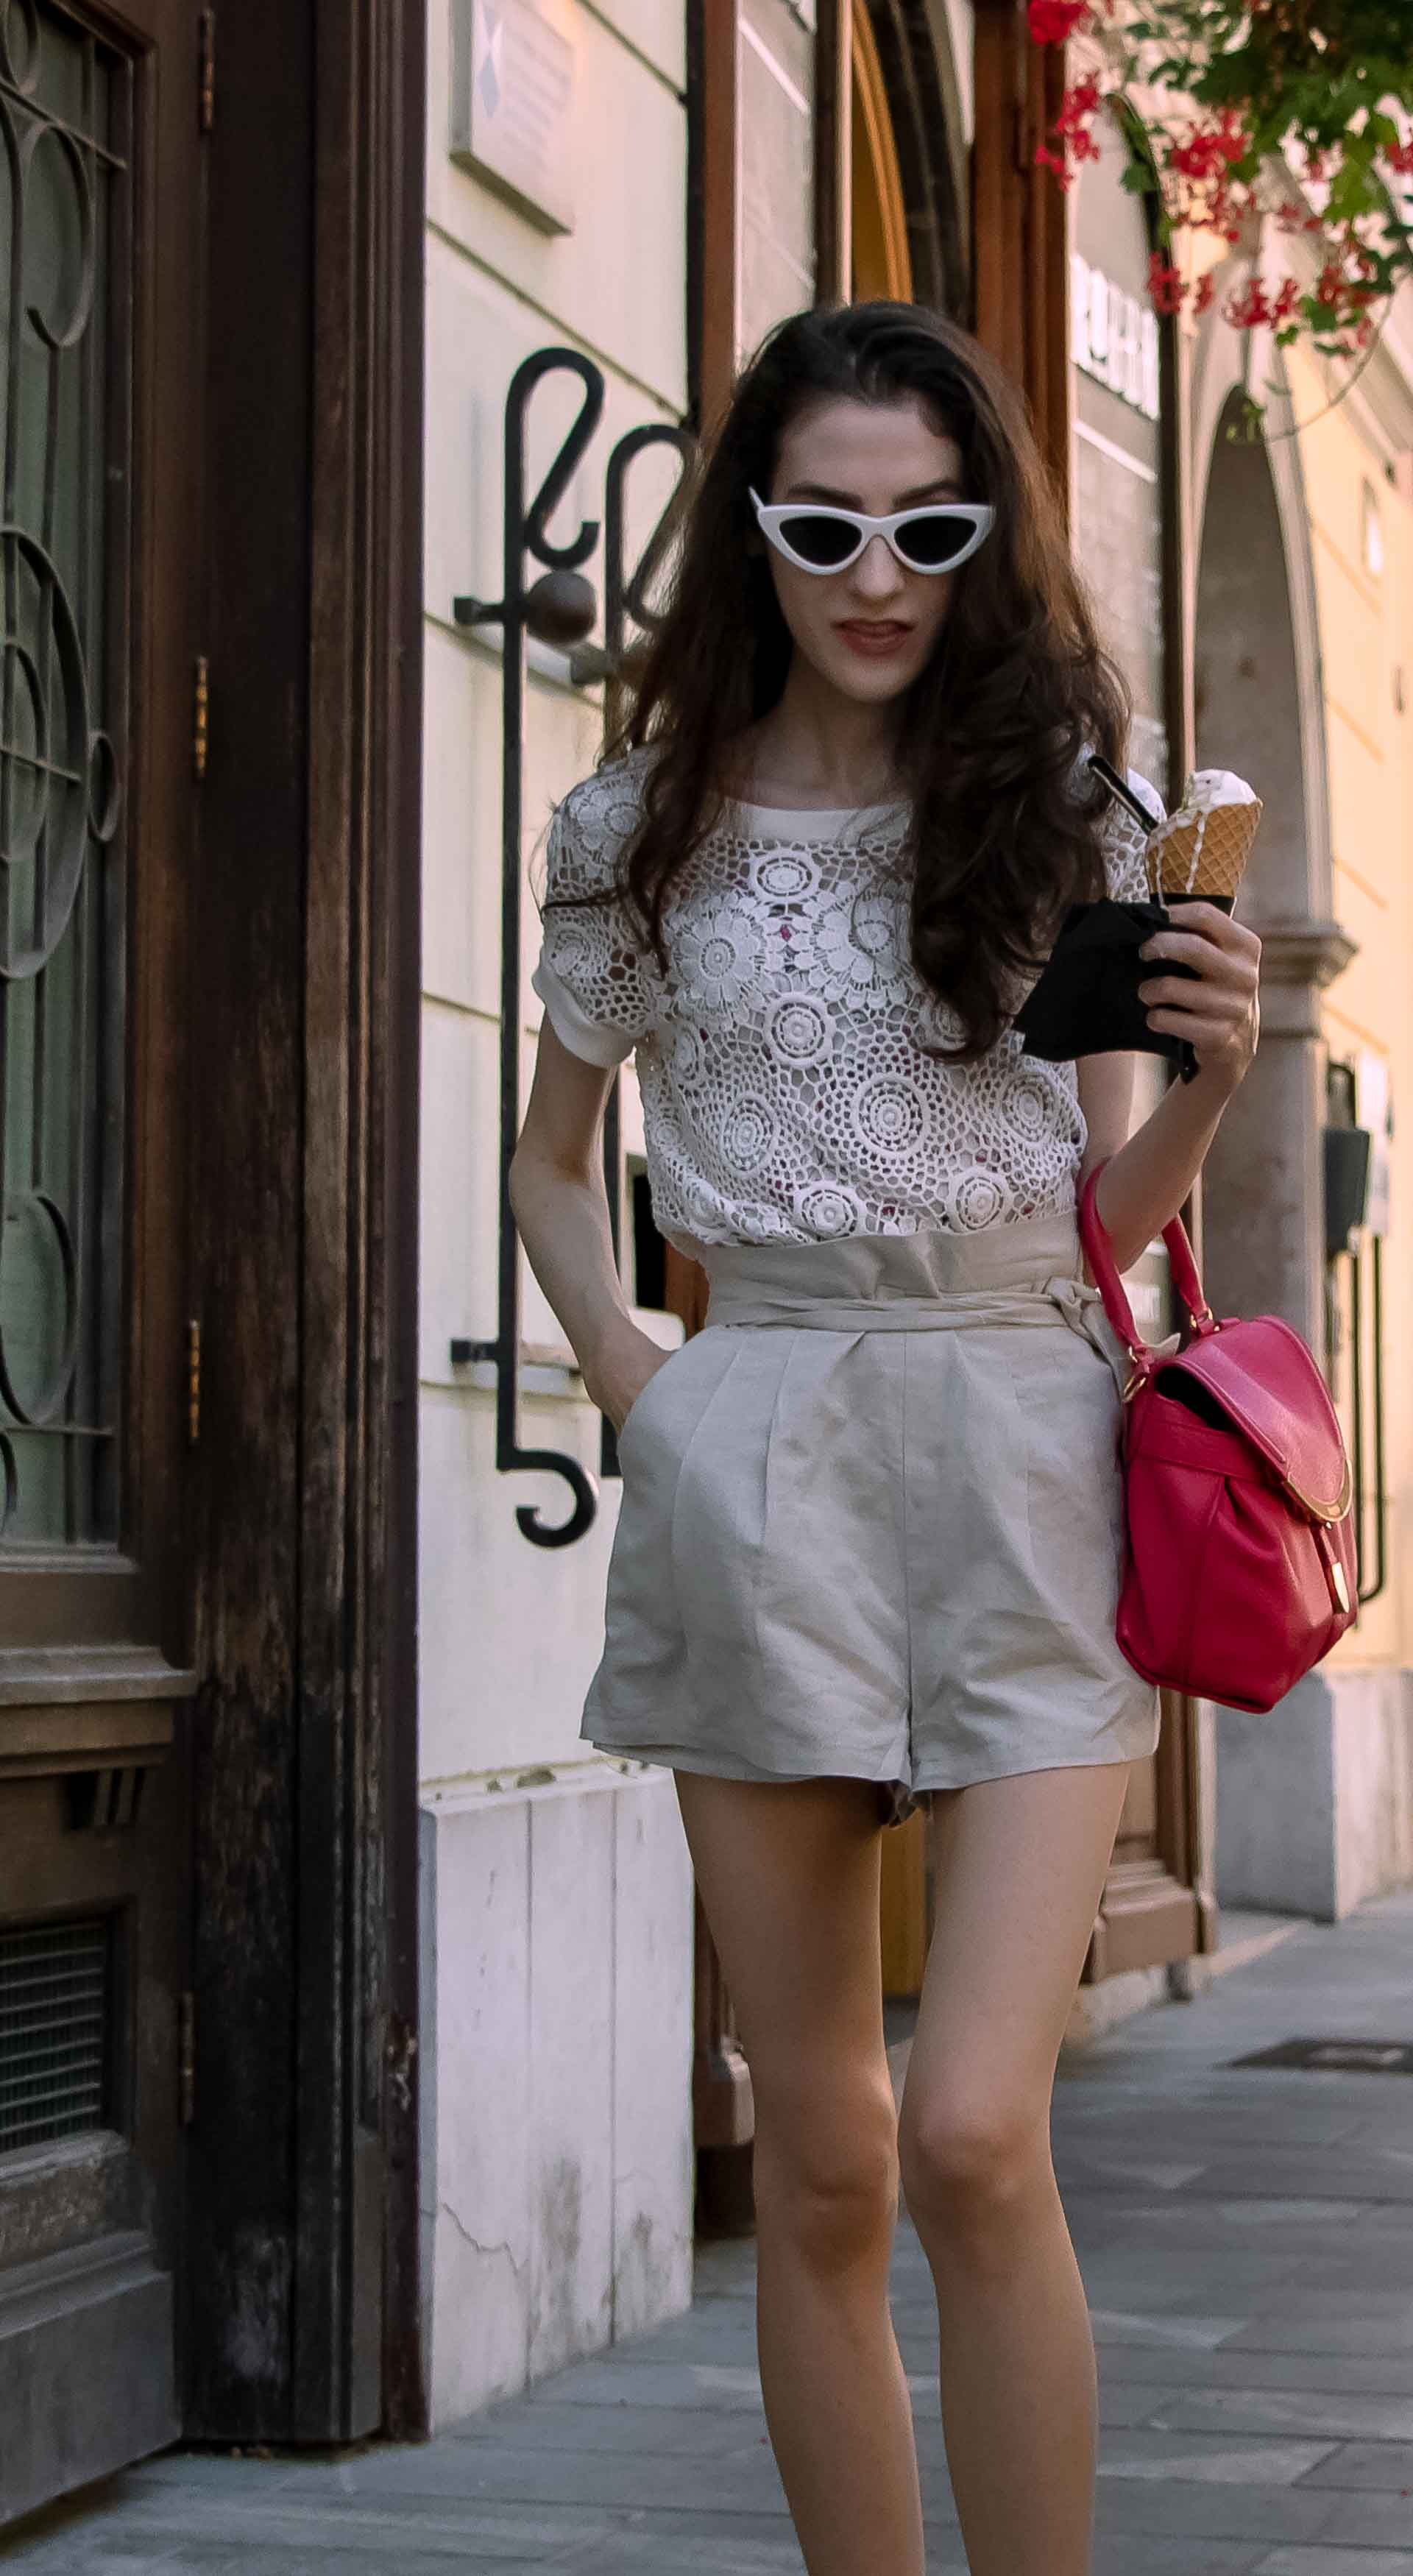 Beautiful Slovenian Fashion Blogger Veronika Lipar of Brunette from Wall wearing beige linen shorts, crochet top, black slip-ons shoes, pink top handle bag, holding ice cream in a cone while walking down the street